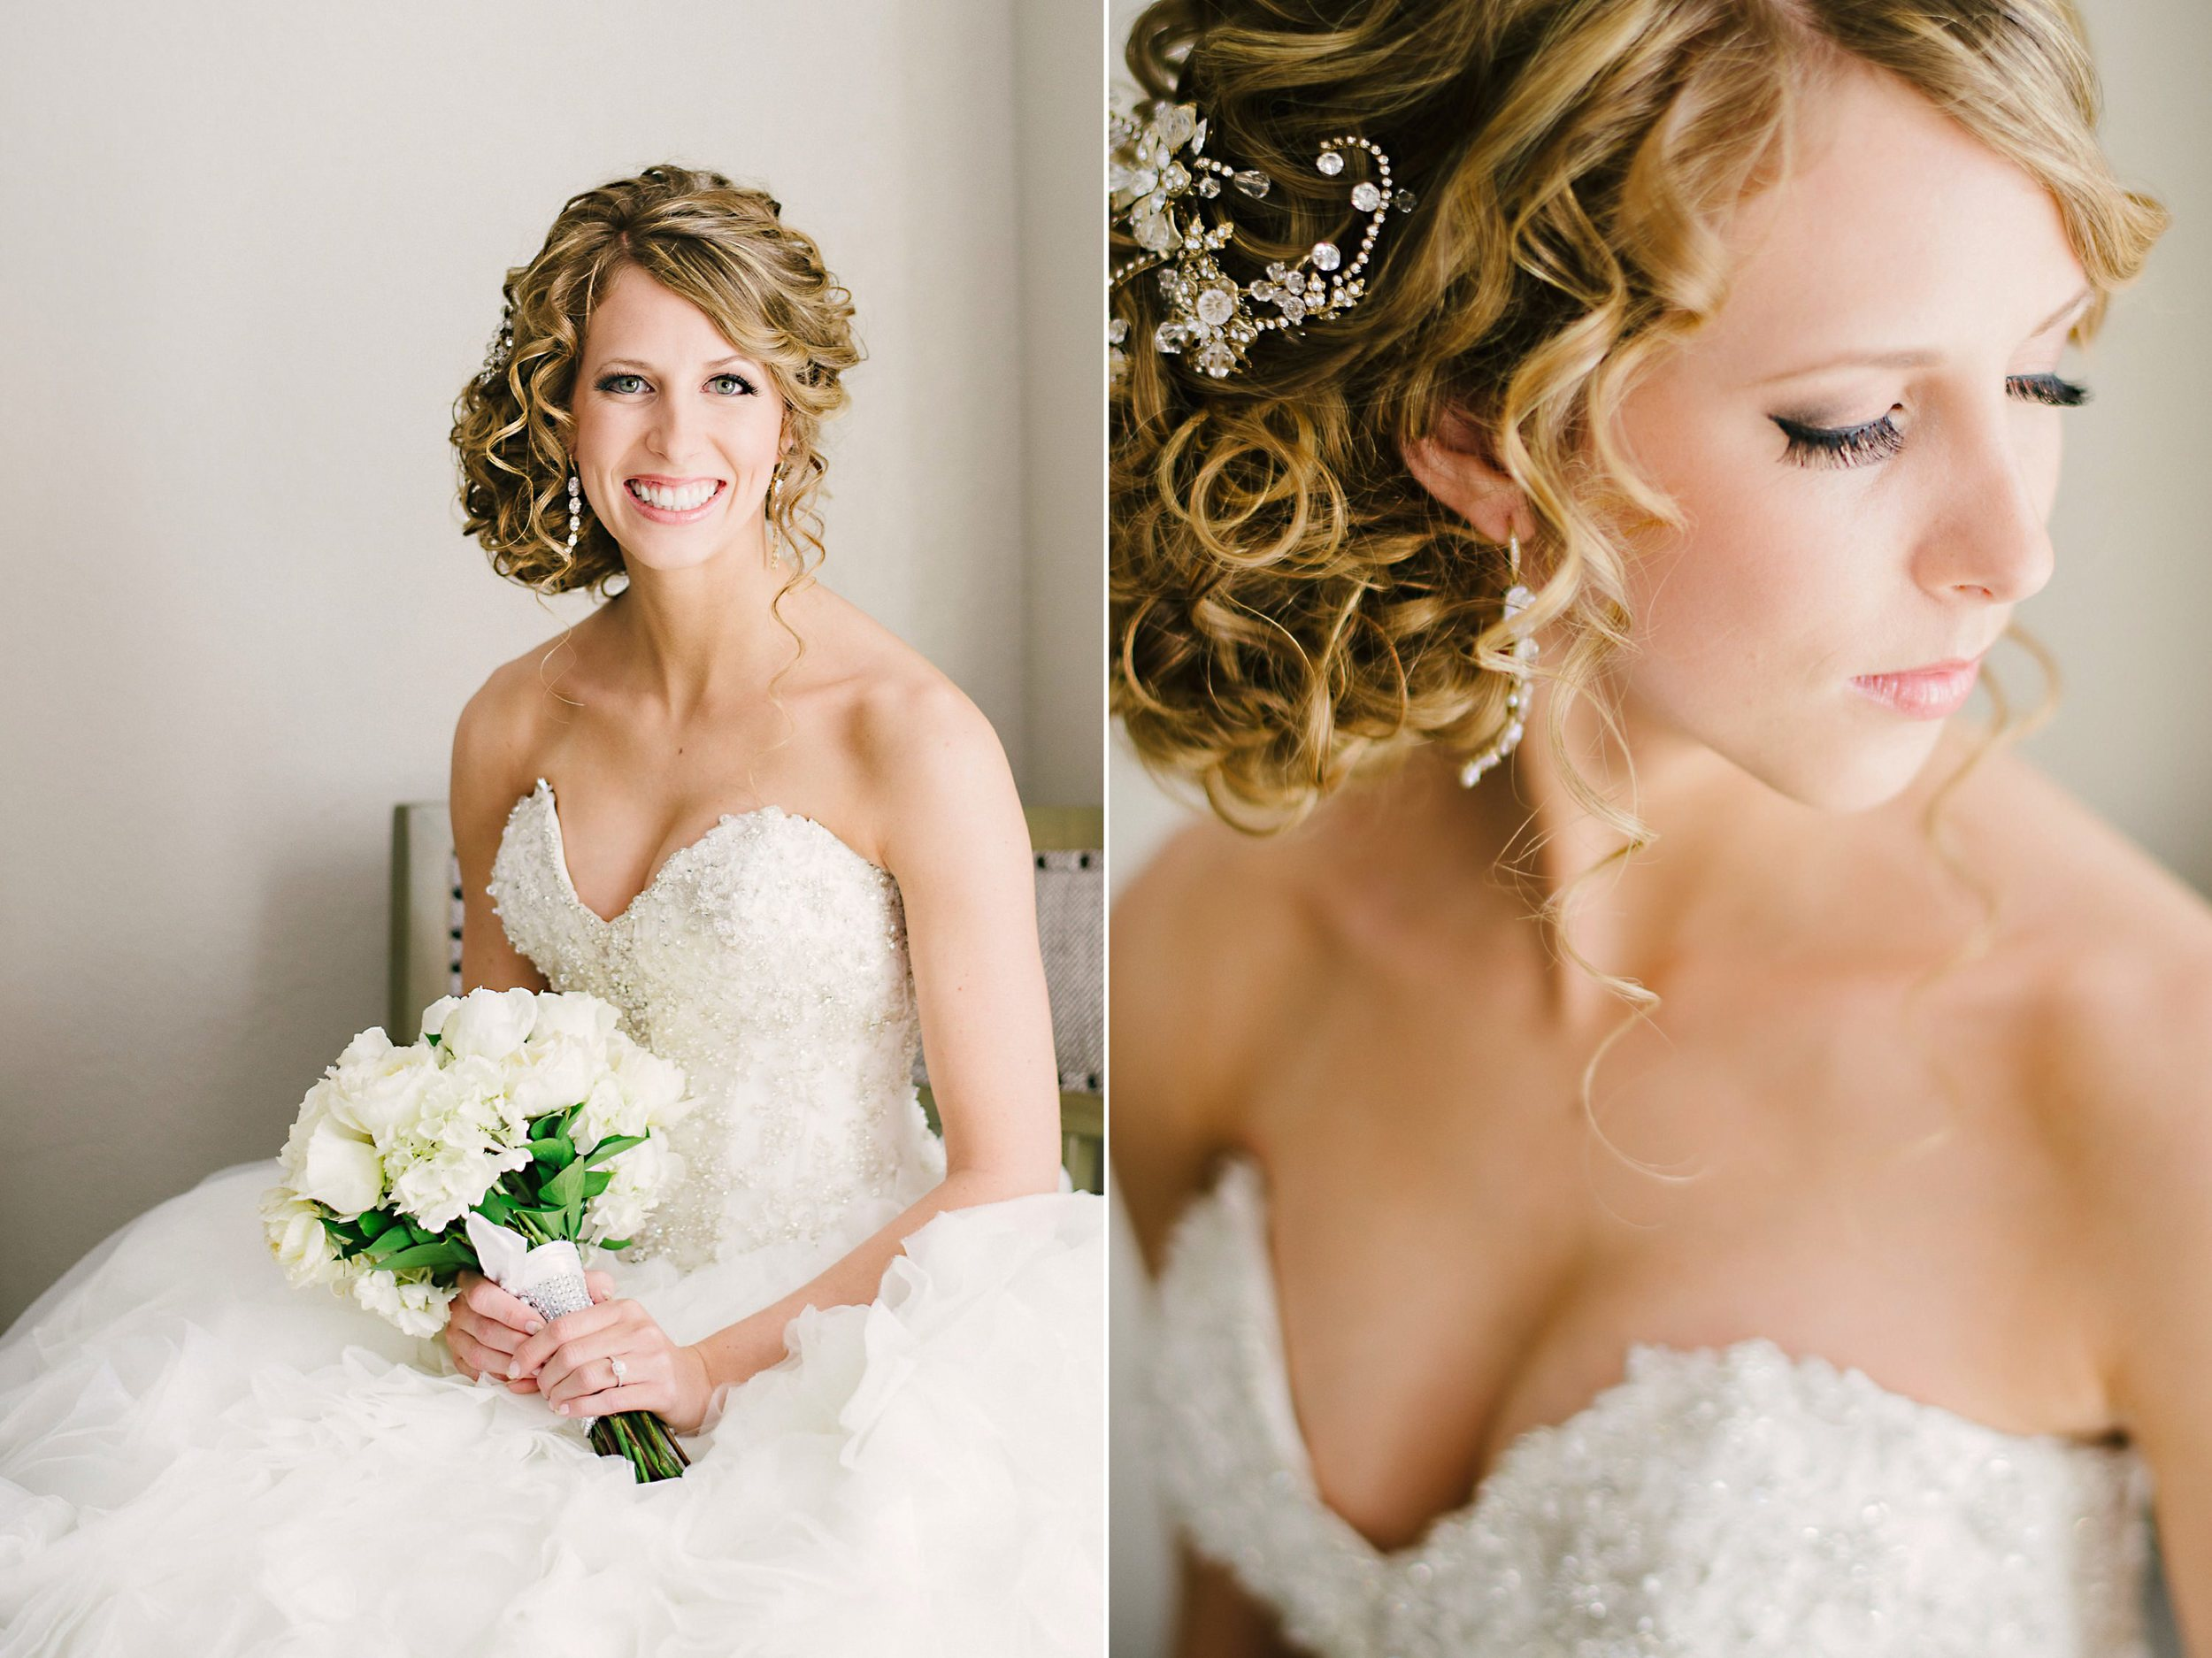 Michele Renee Hair and Makeup